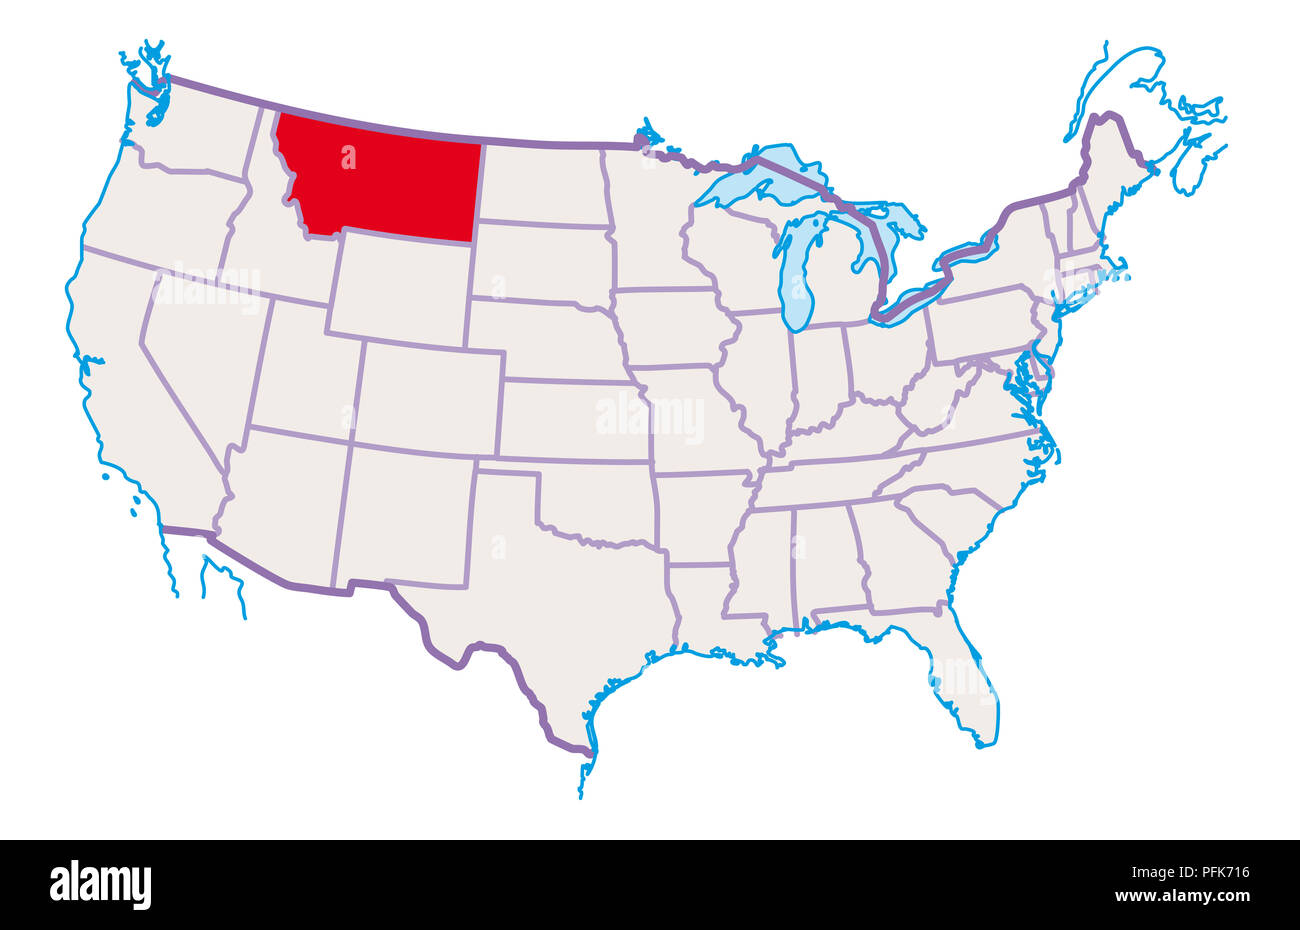 Map Of Montana Cut Out Stock Images & Pictures - Alamy Montana In Usa Map on snowflake in montana, home in montana, dinosaurs in montana, animals in montana, usa map in miami, butterflies in montana, turkey in montana, tent in montana, usa map from montana,